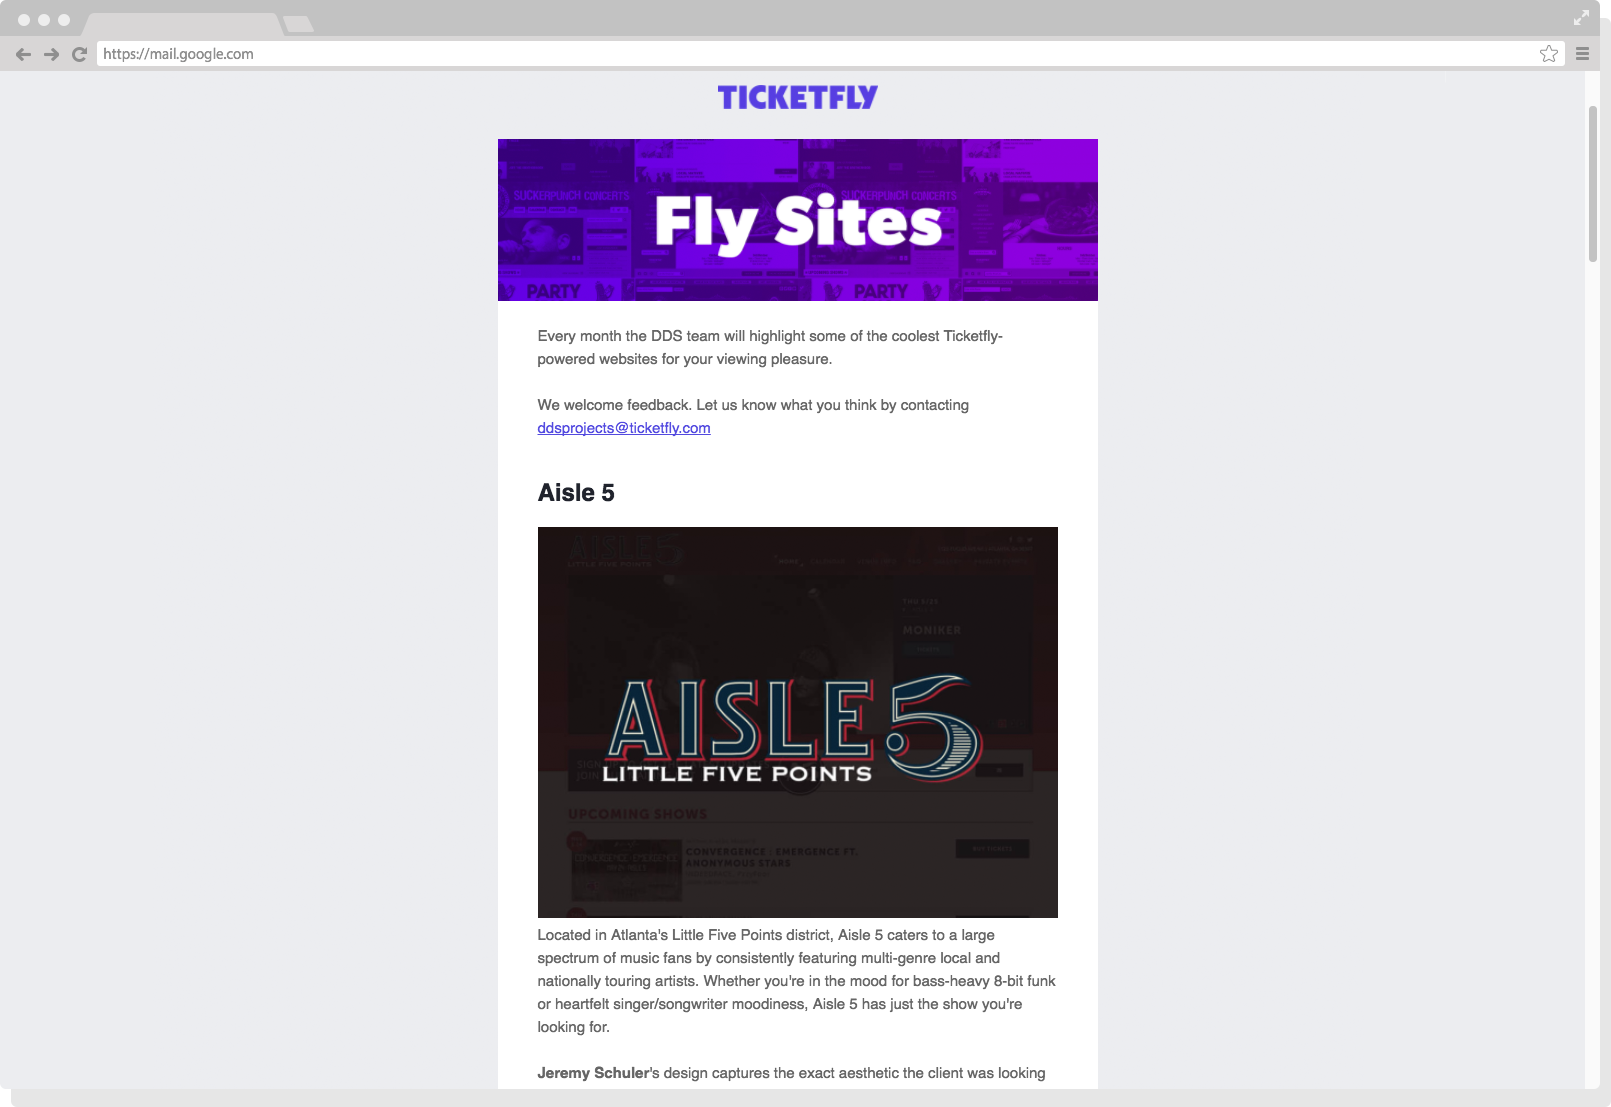 Schuler - Ticketfly - Press - Fly Sites - Aisle 5